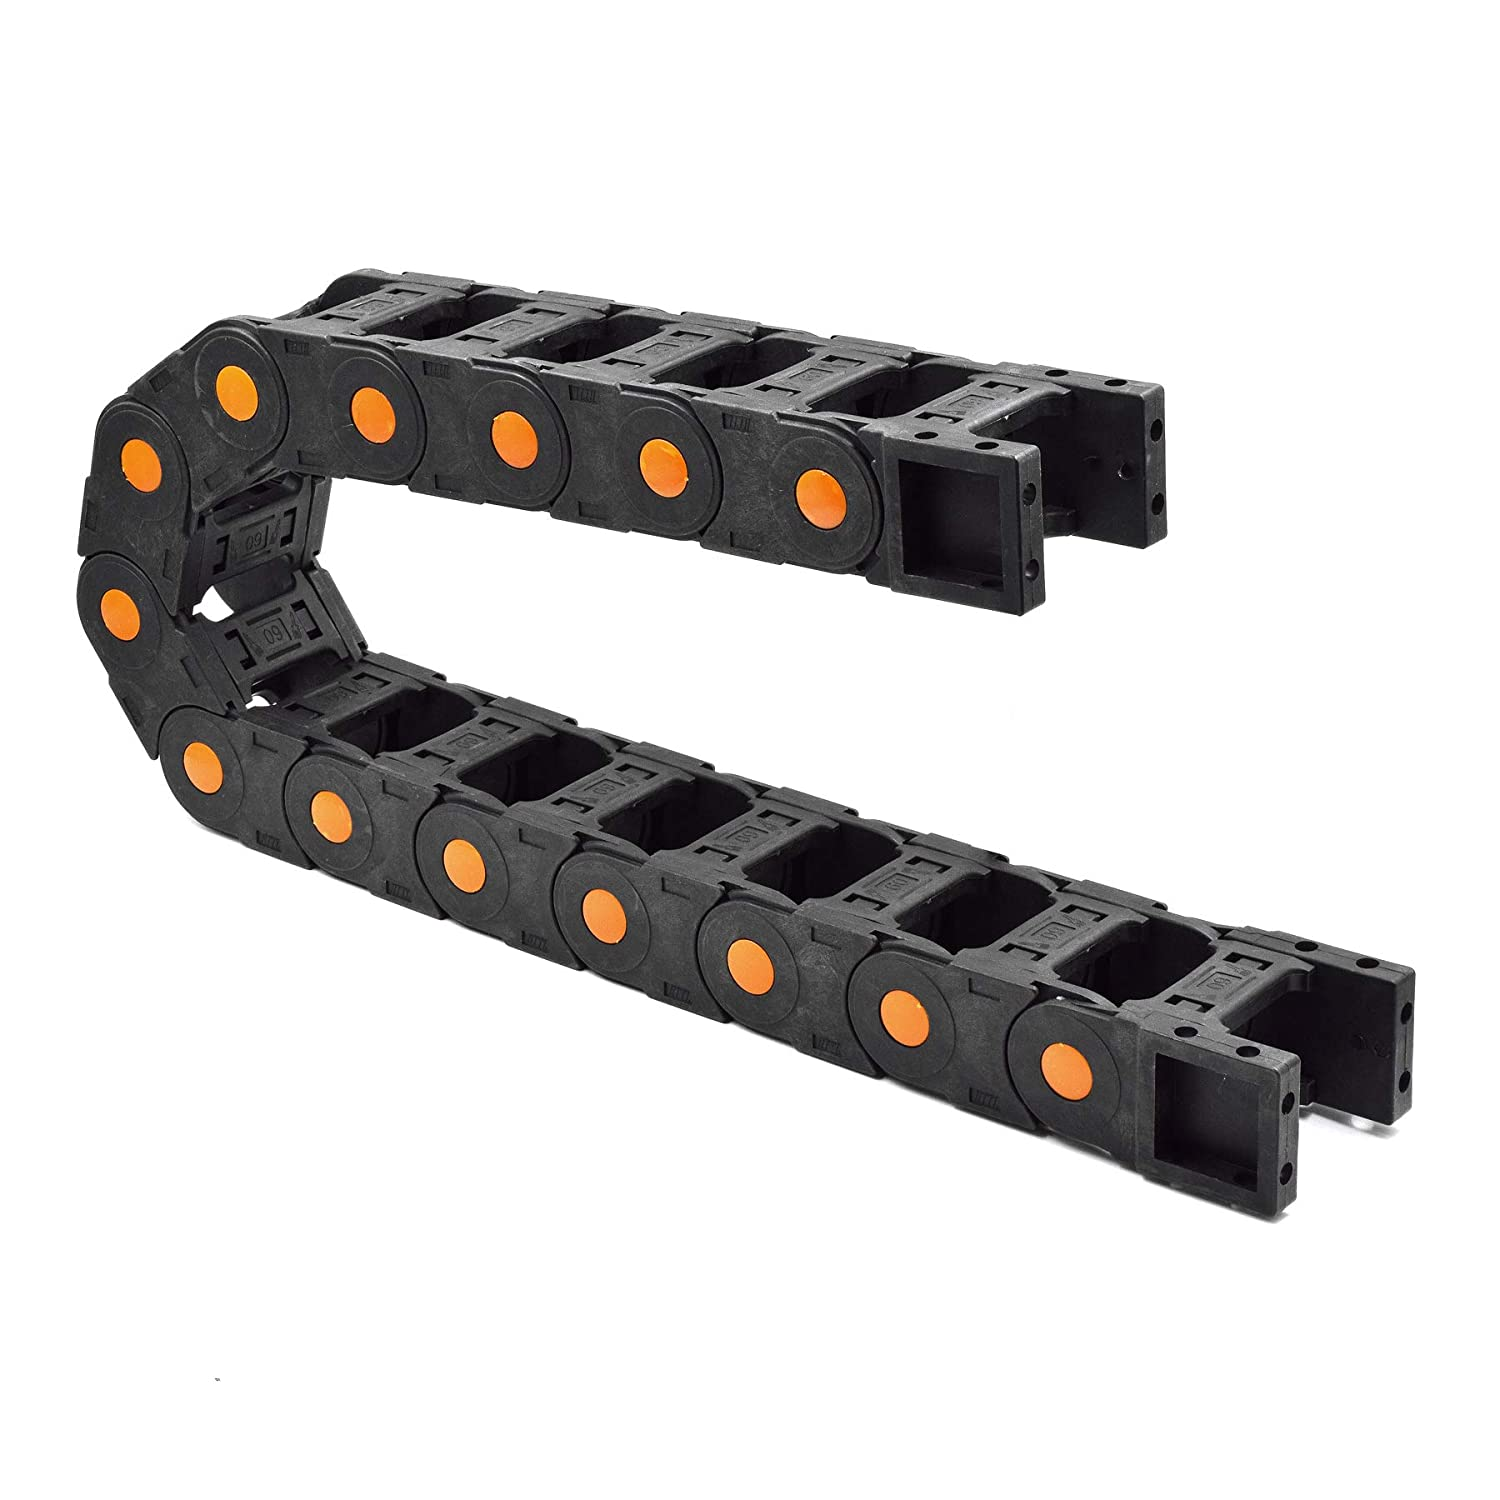 Plastic Drag Chain Cable Carrier Open Type with End Connectors R100 35 x 60mm L1000mm for Electrical CNC Router Machines